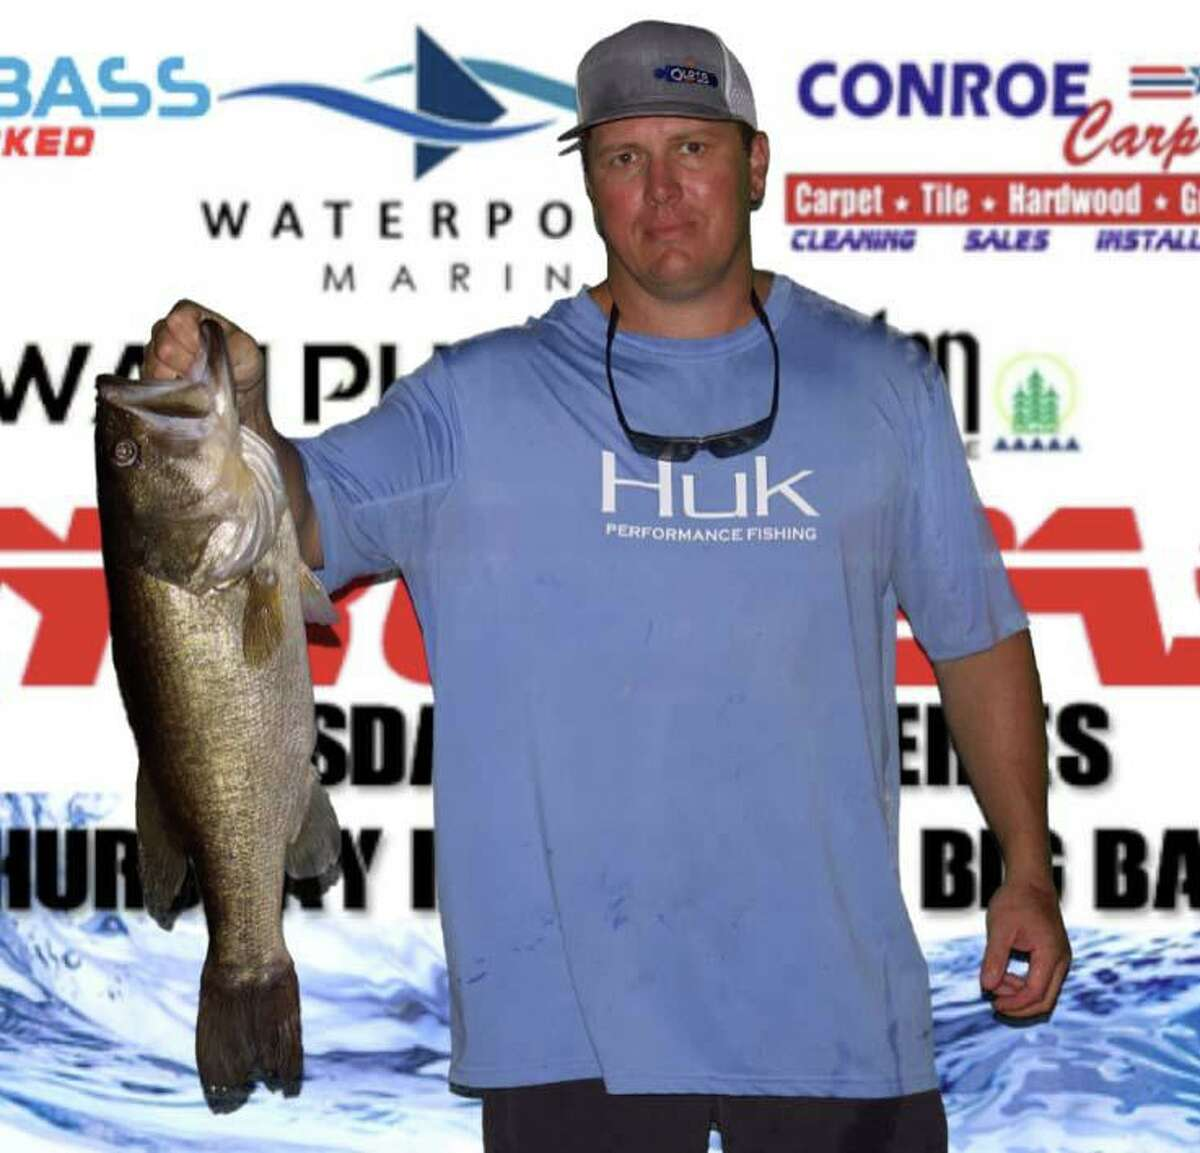 Nick Morton (pictured) and Langston Johnson weighed in the first place big bass in the CONROEBASS Tuesday Tournament that weighed 8.93 pounds